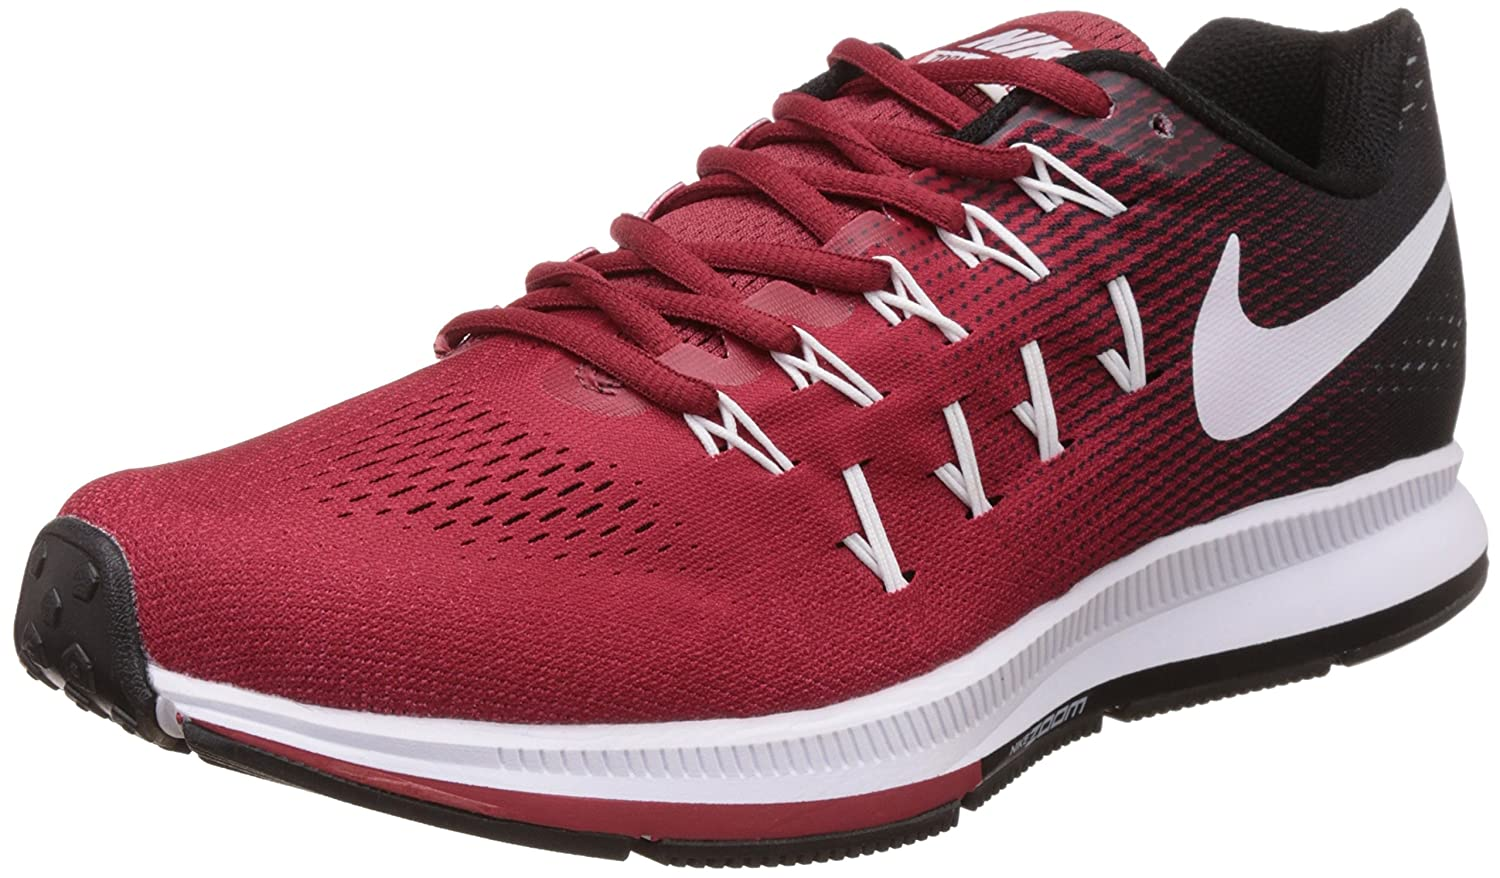 7c3d28c755ce ... Nike Mens Air Zoom Pegasus 33 Red Running Shoes - 9 UKIndia (44 EU) Delicate  Nike Air Zoom Pegasus 33 Pink White Grey 831356 603 Womens Girls Trail ...